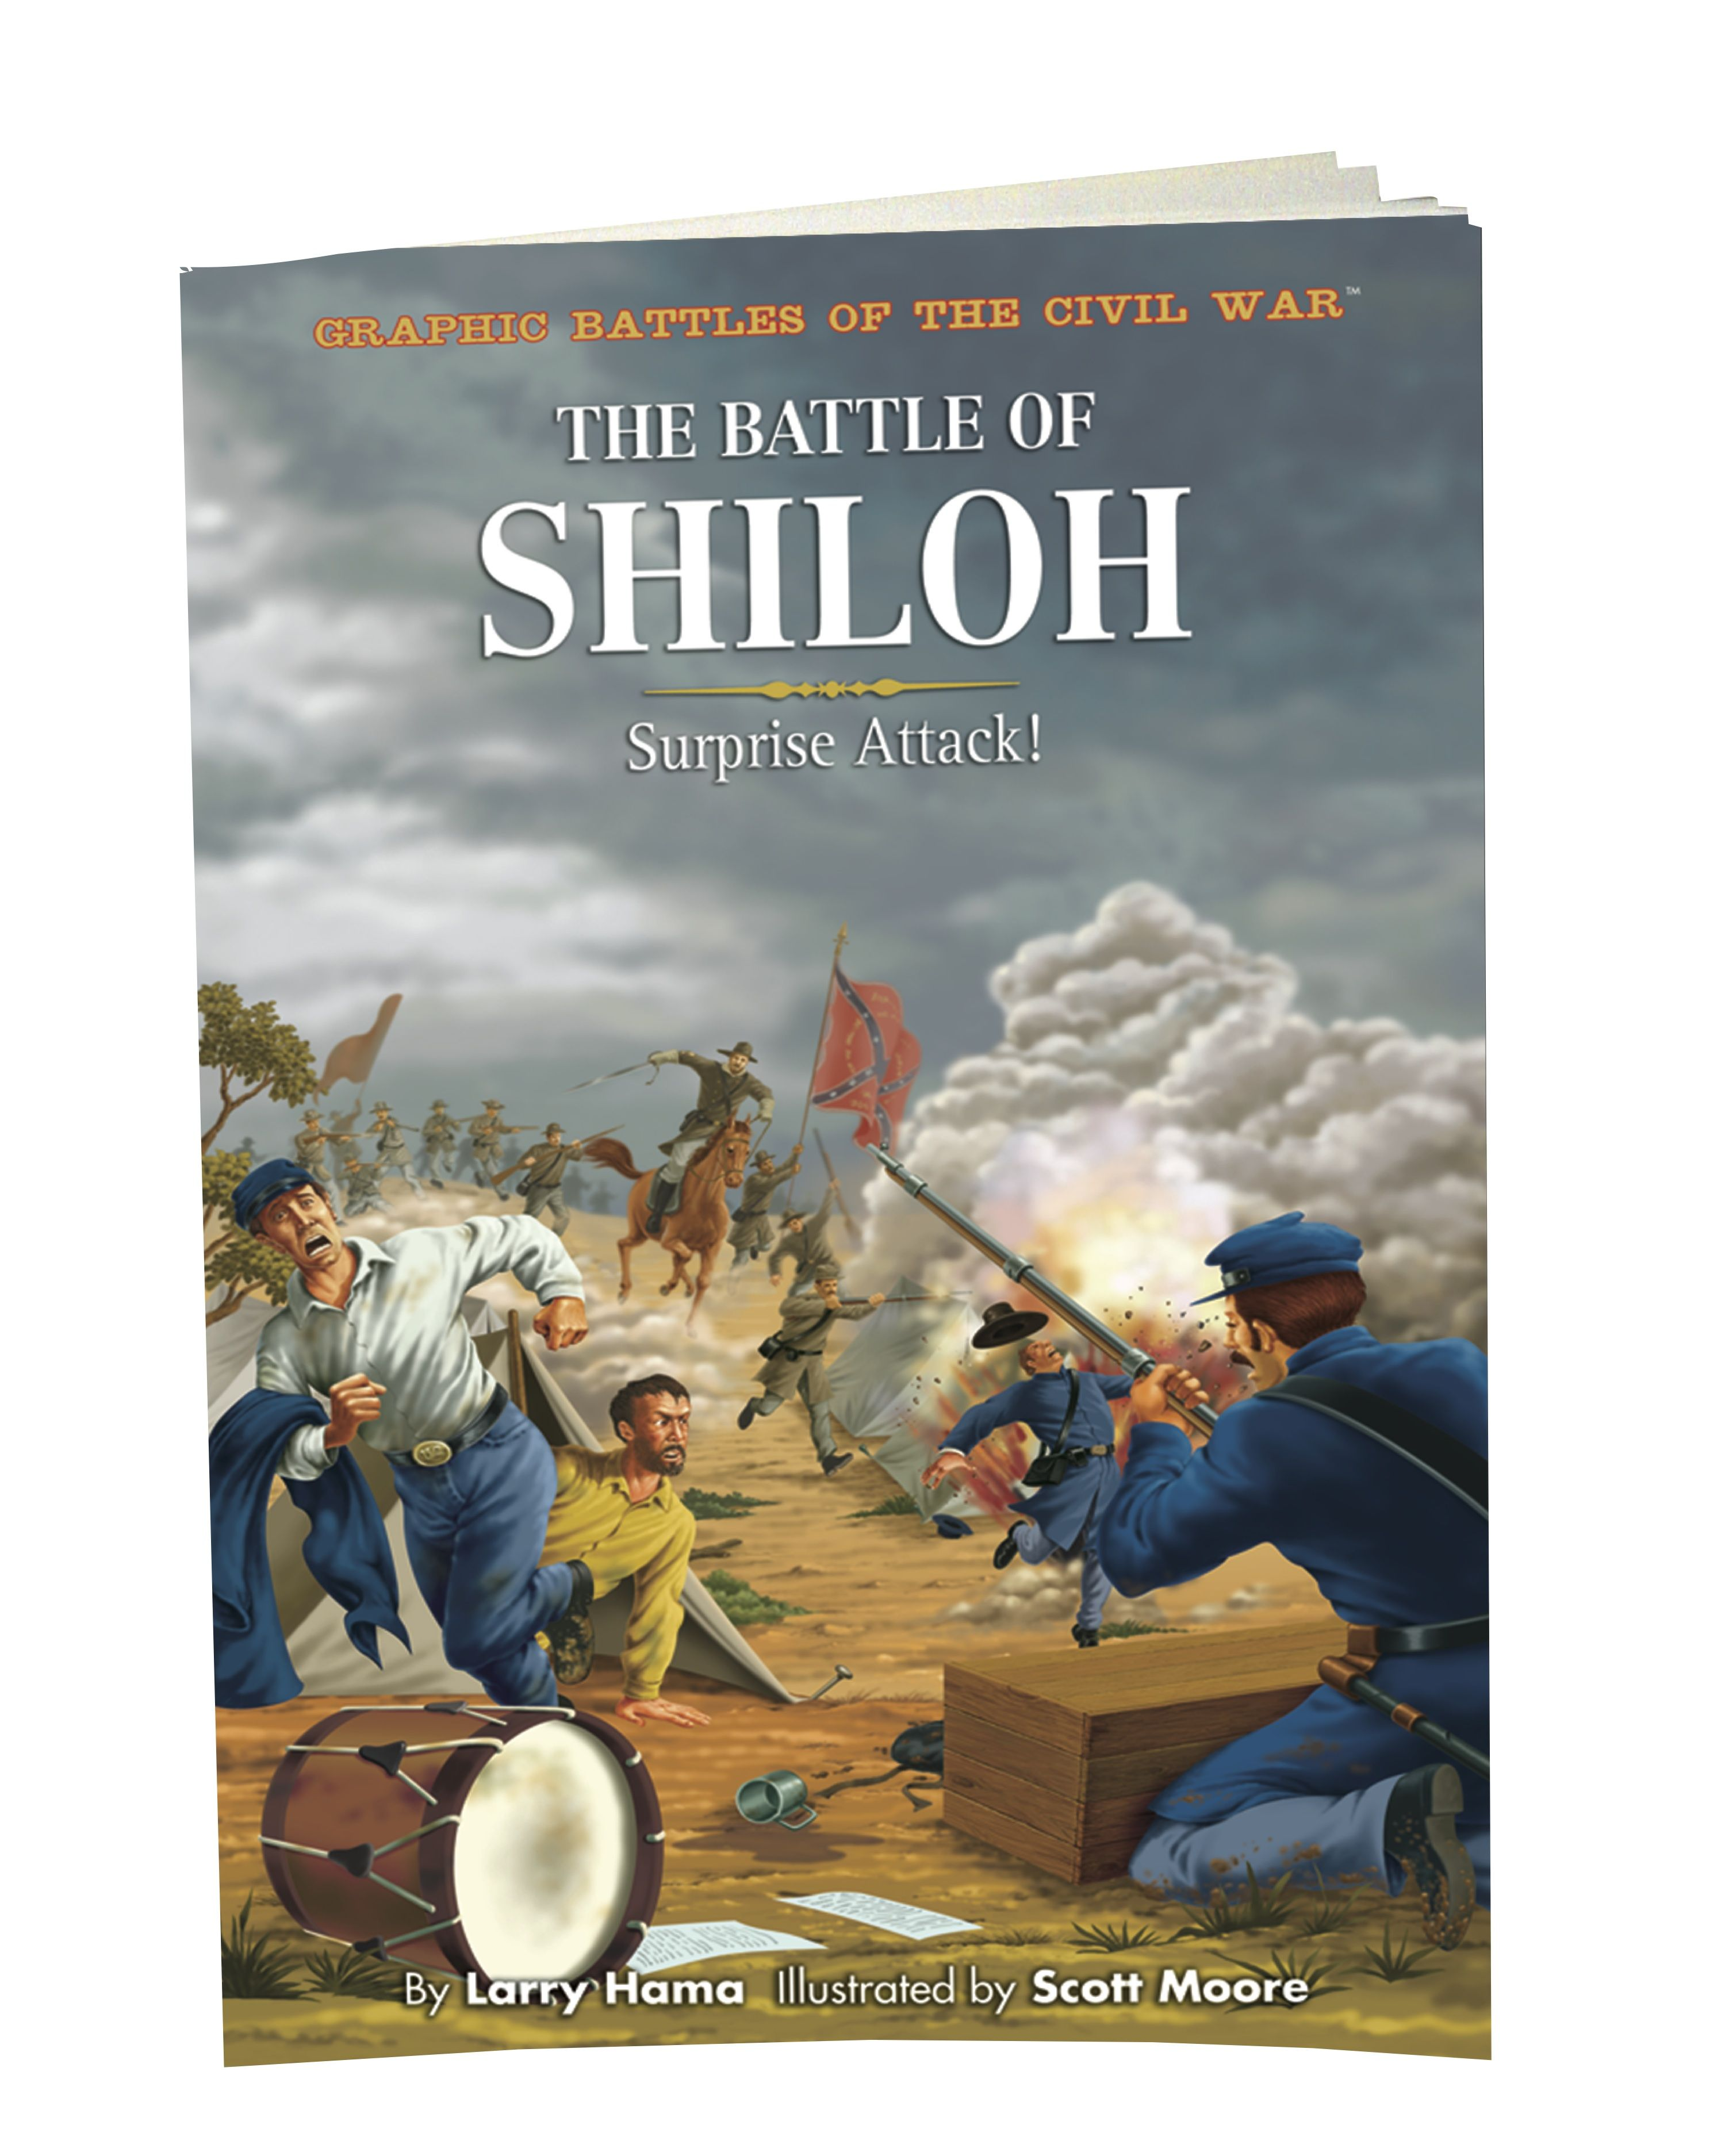 Graphic battles shilo explore history with meticulously